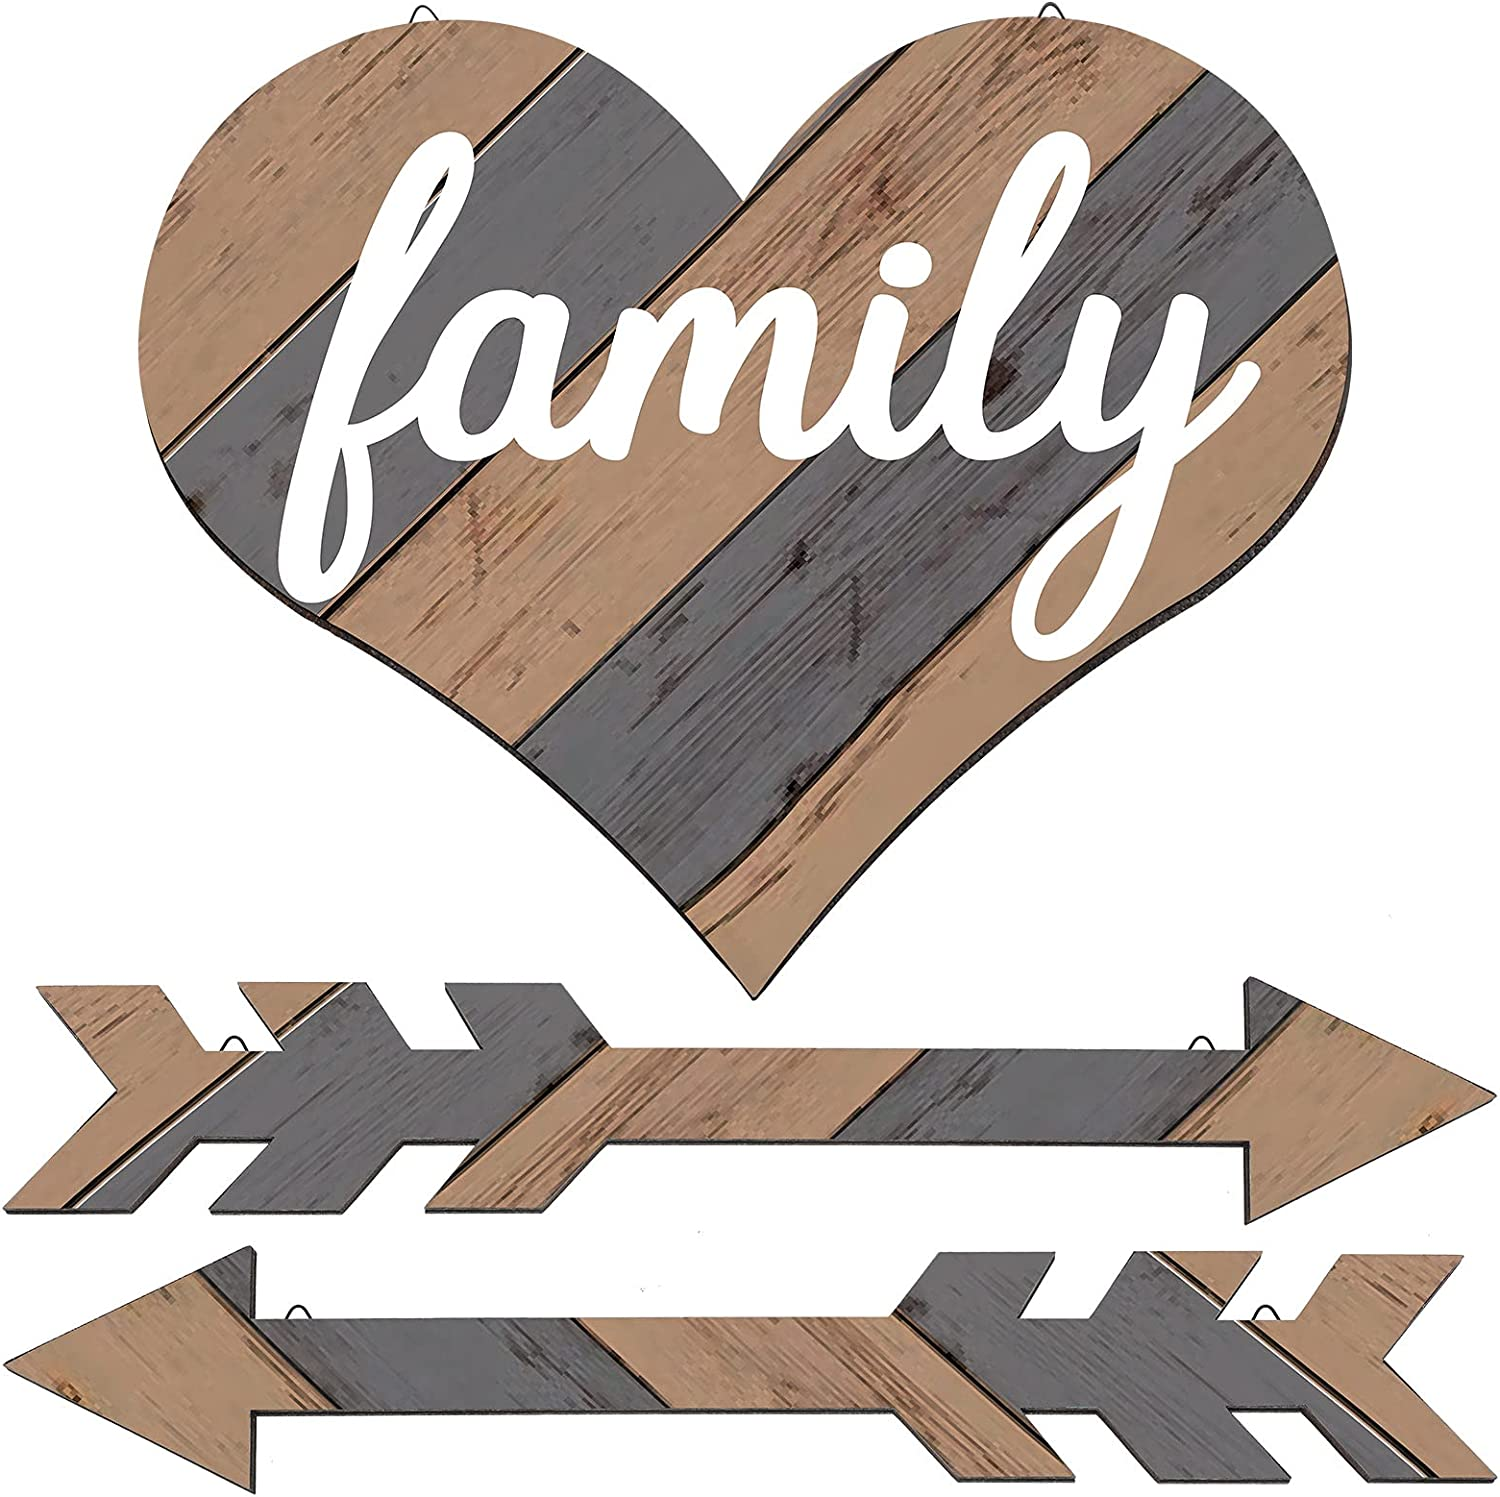 3 Pieces Family Arrows Wooden Wall Decor, Wood Farmhouse Heart Decoration Multi-color, Rustic Wooden Arrow Signs for Home Outdoor Party Decor